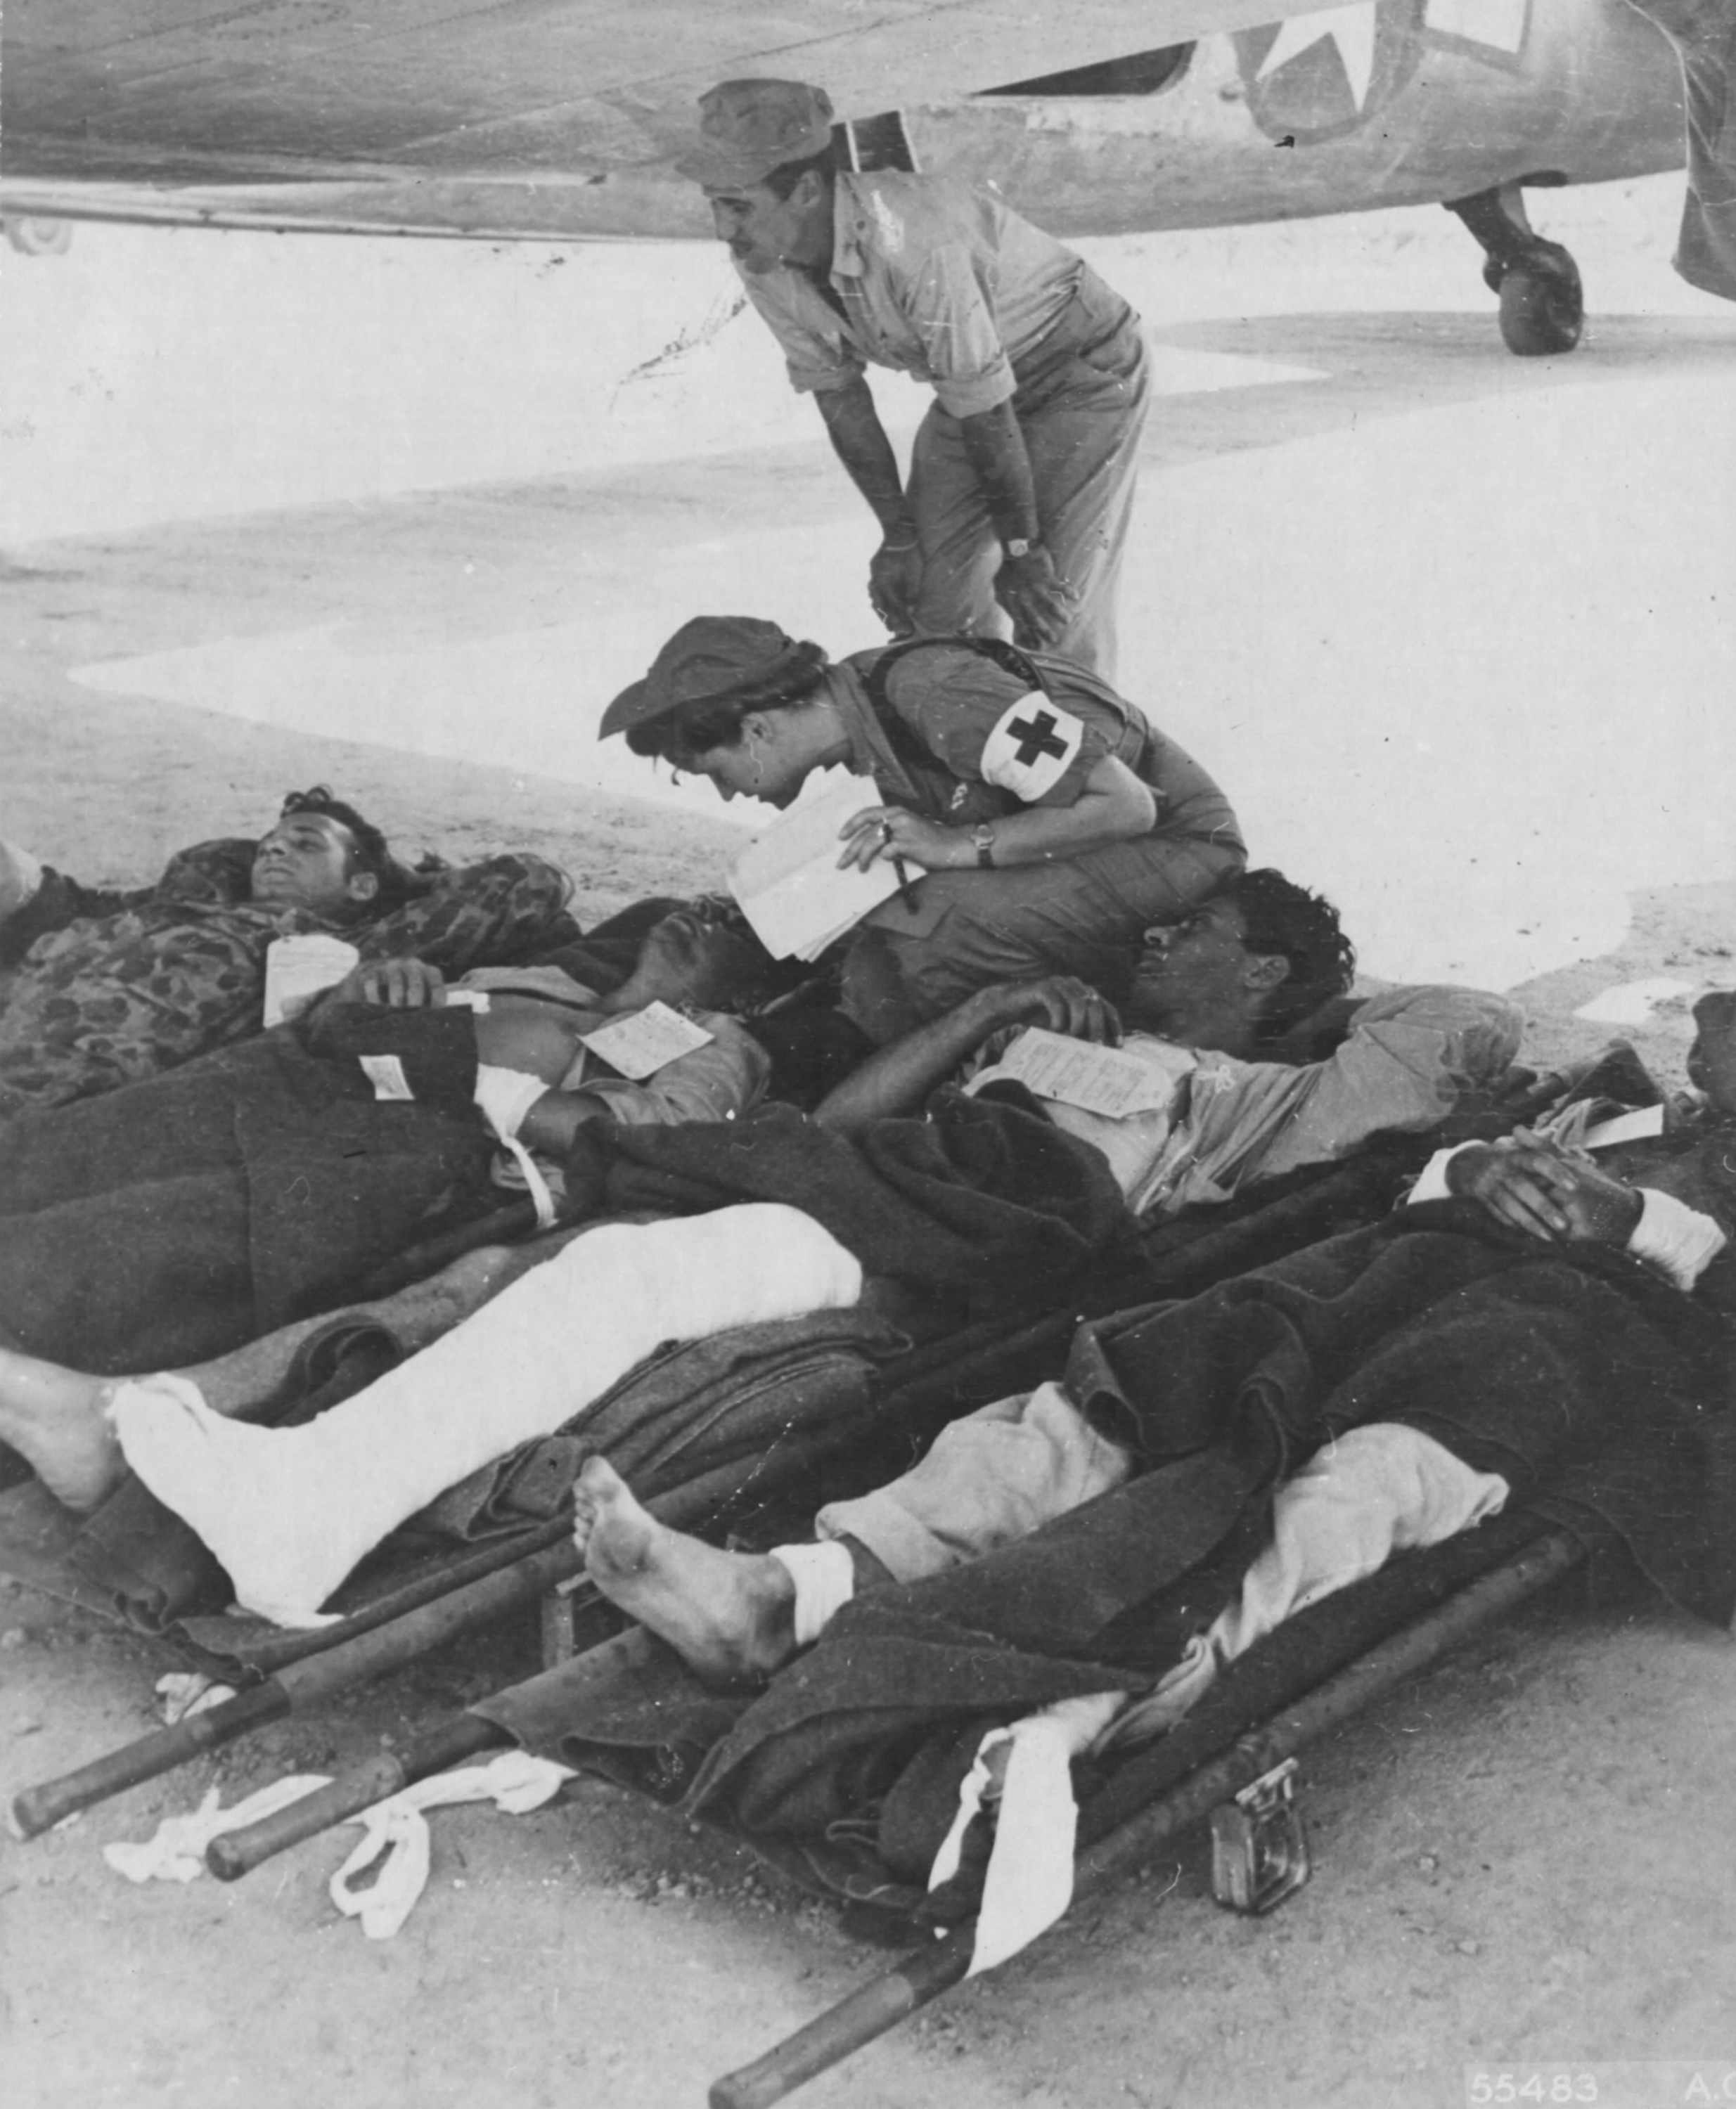 Flight Nurse Prepares Wounded for Transport